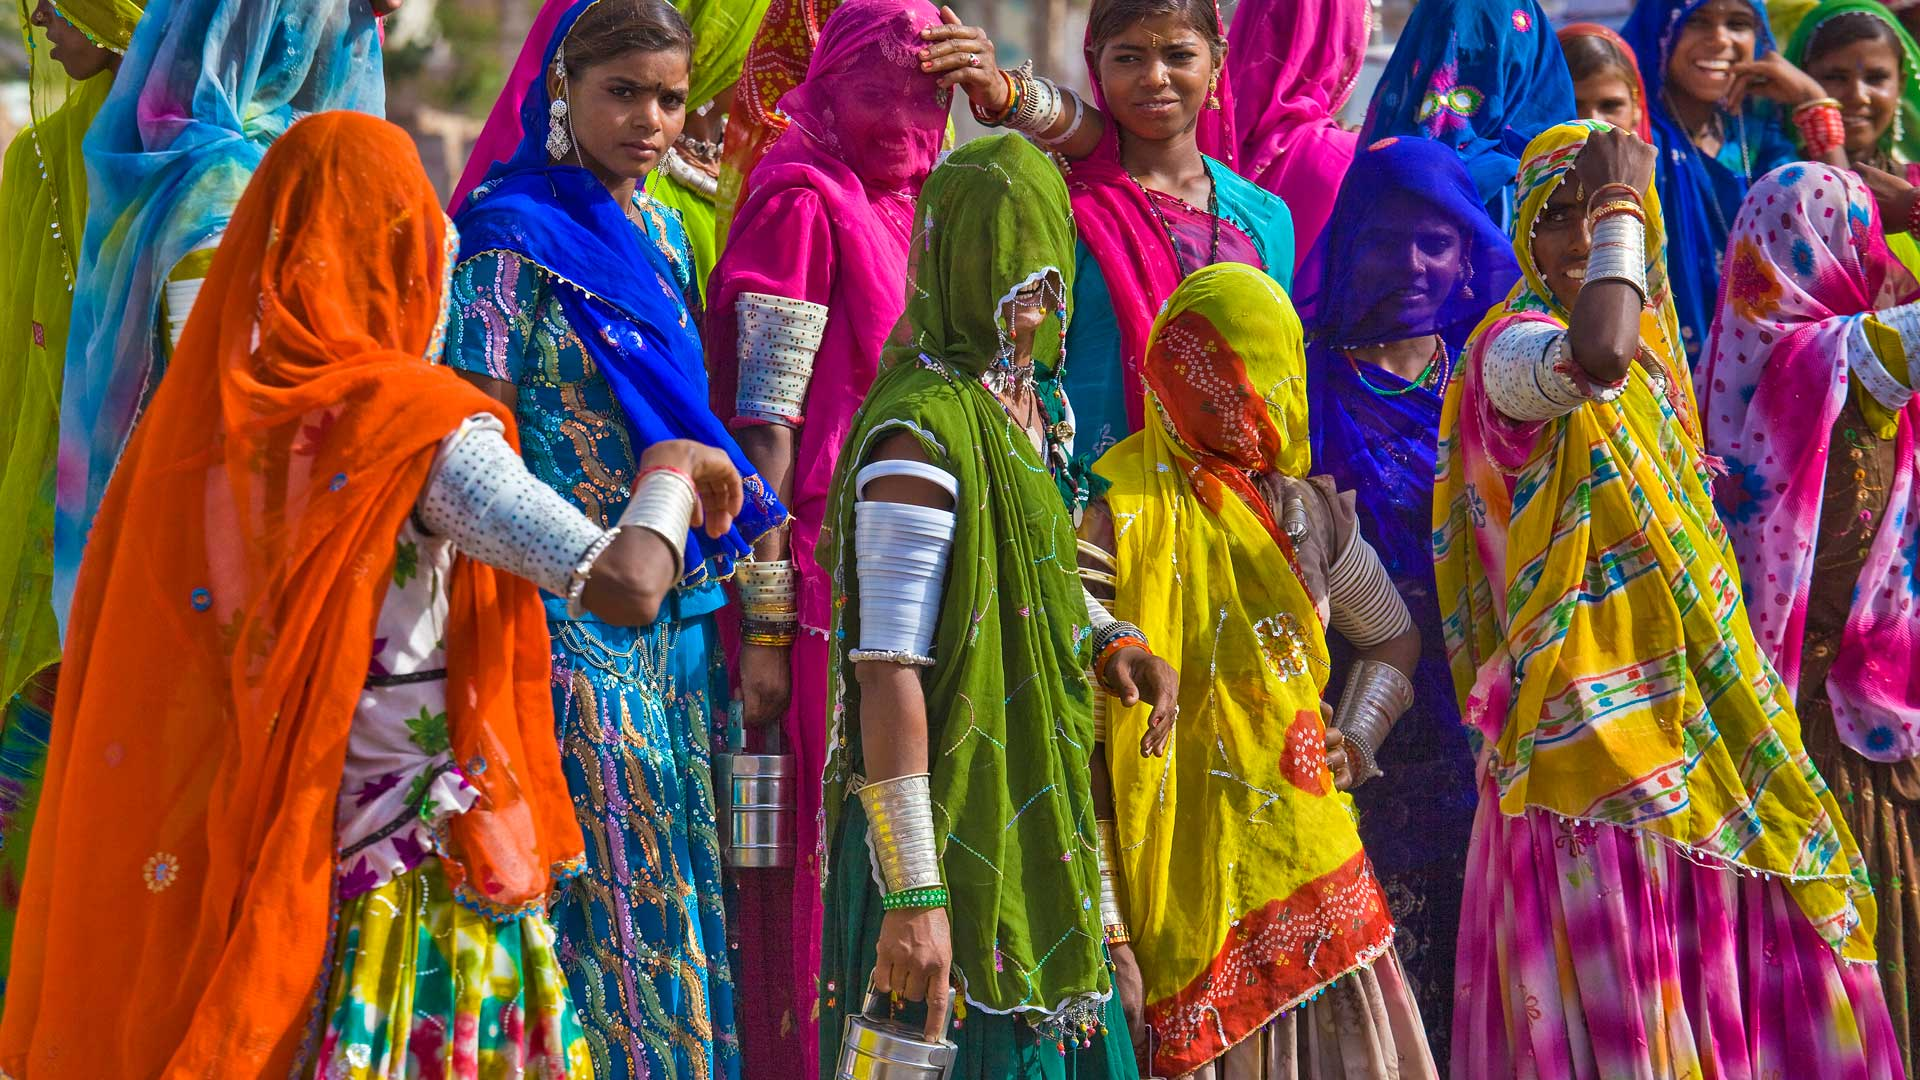 Women in traditional colorful saris, India with GeoEx